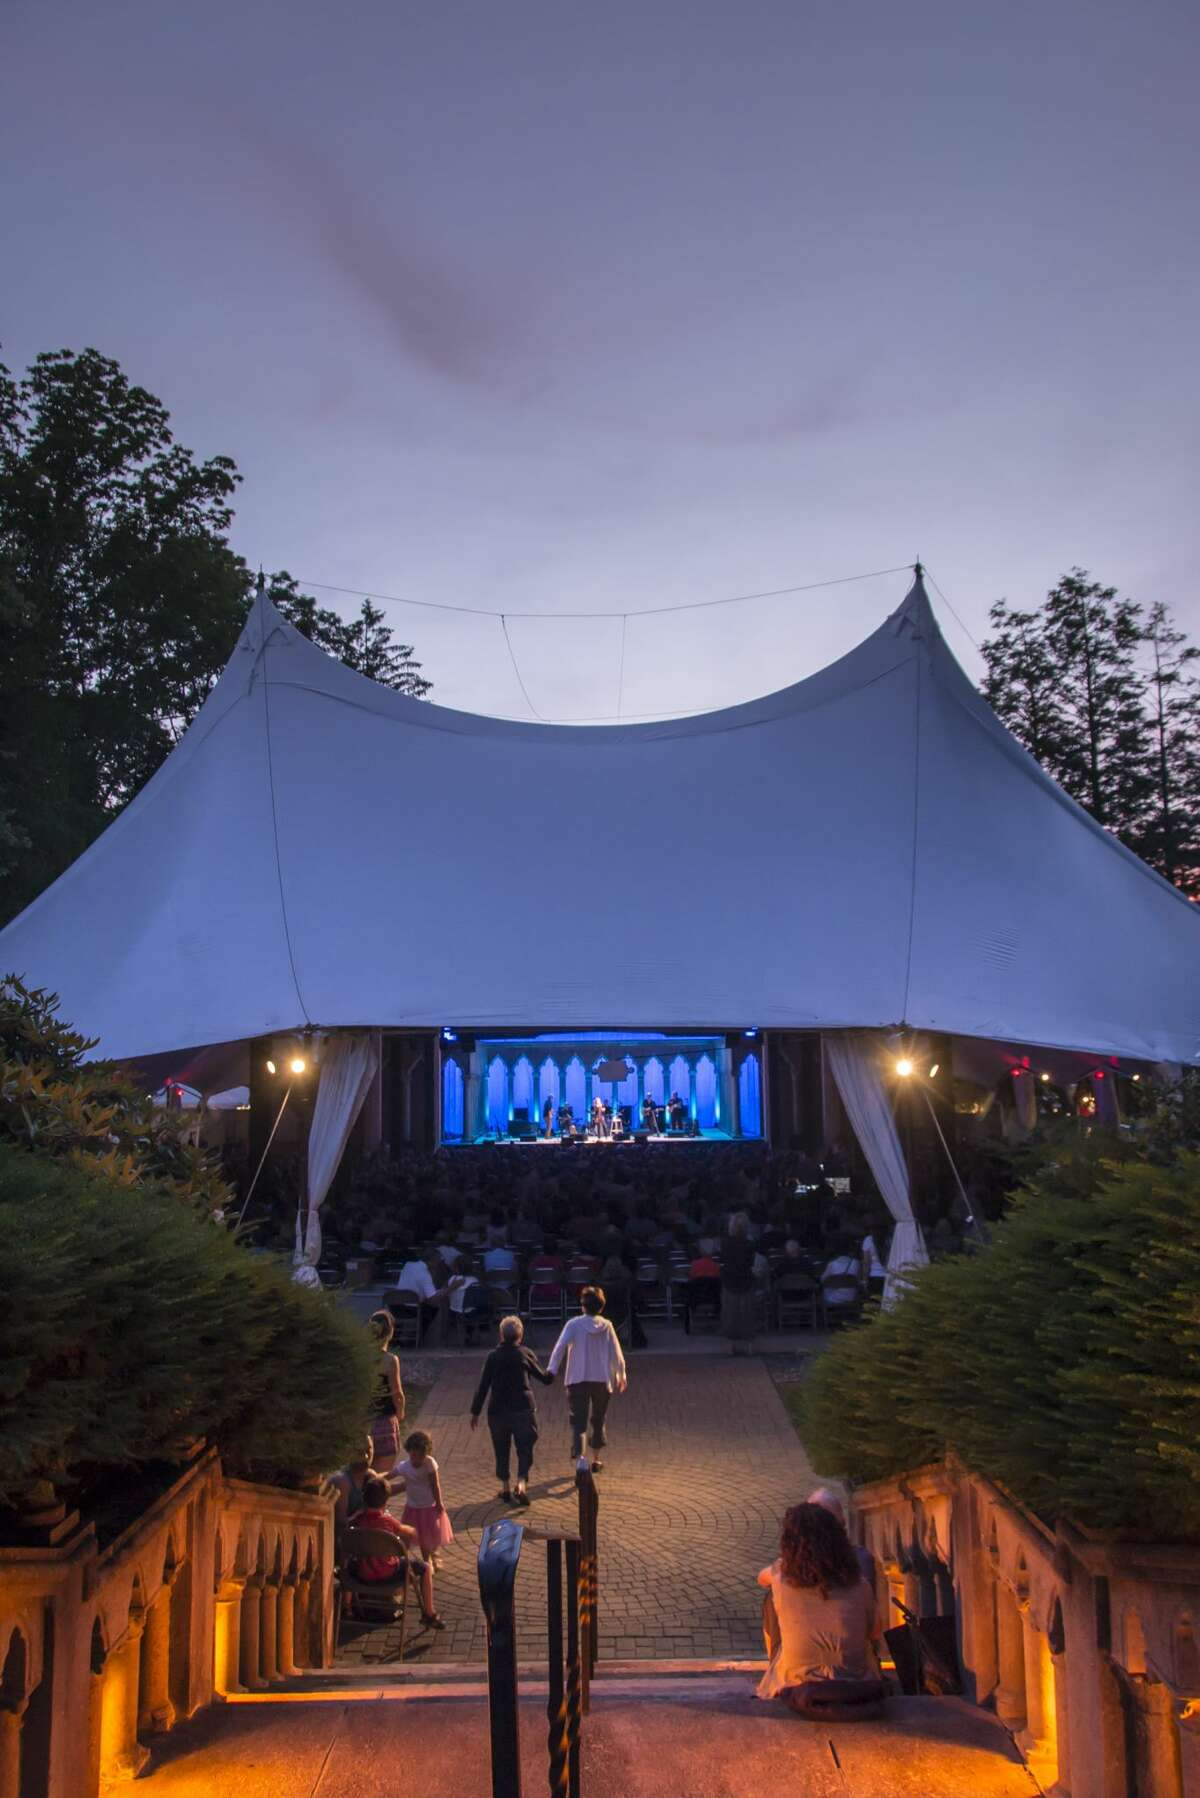 Dusk out site the Venetian Theater at Caramoor at Rosanne Cash takes the stage in Katonah New York on June 28, 2014. (photo by Gabe Palacio)